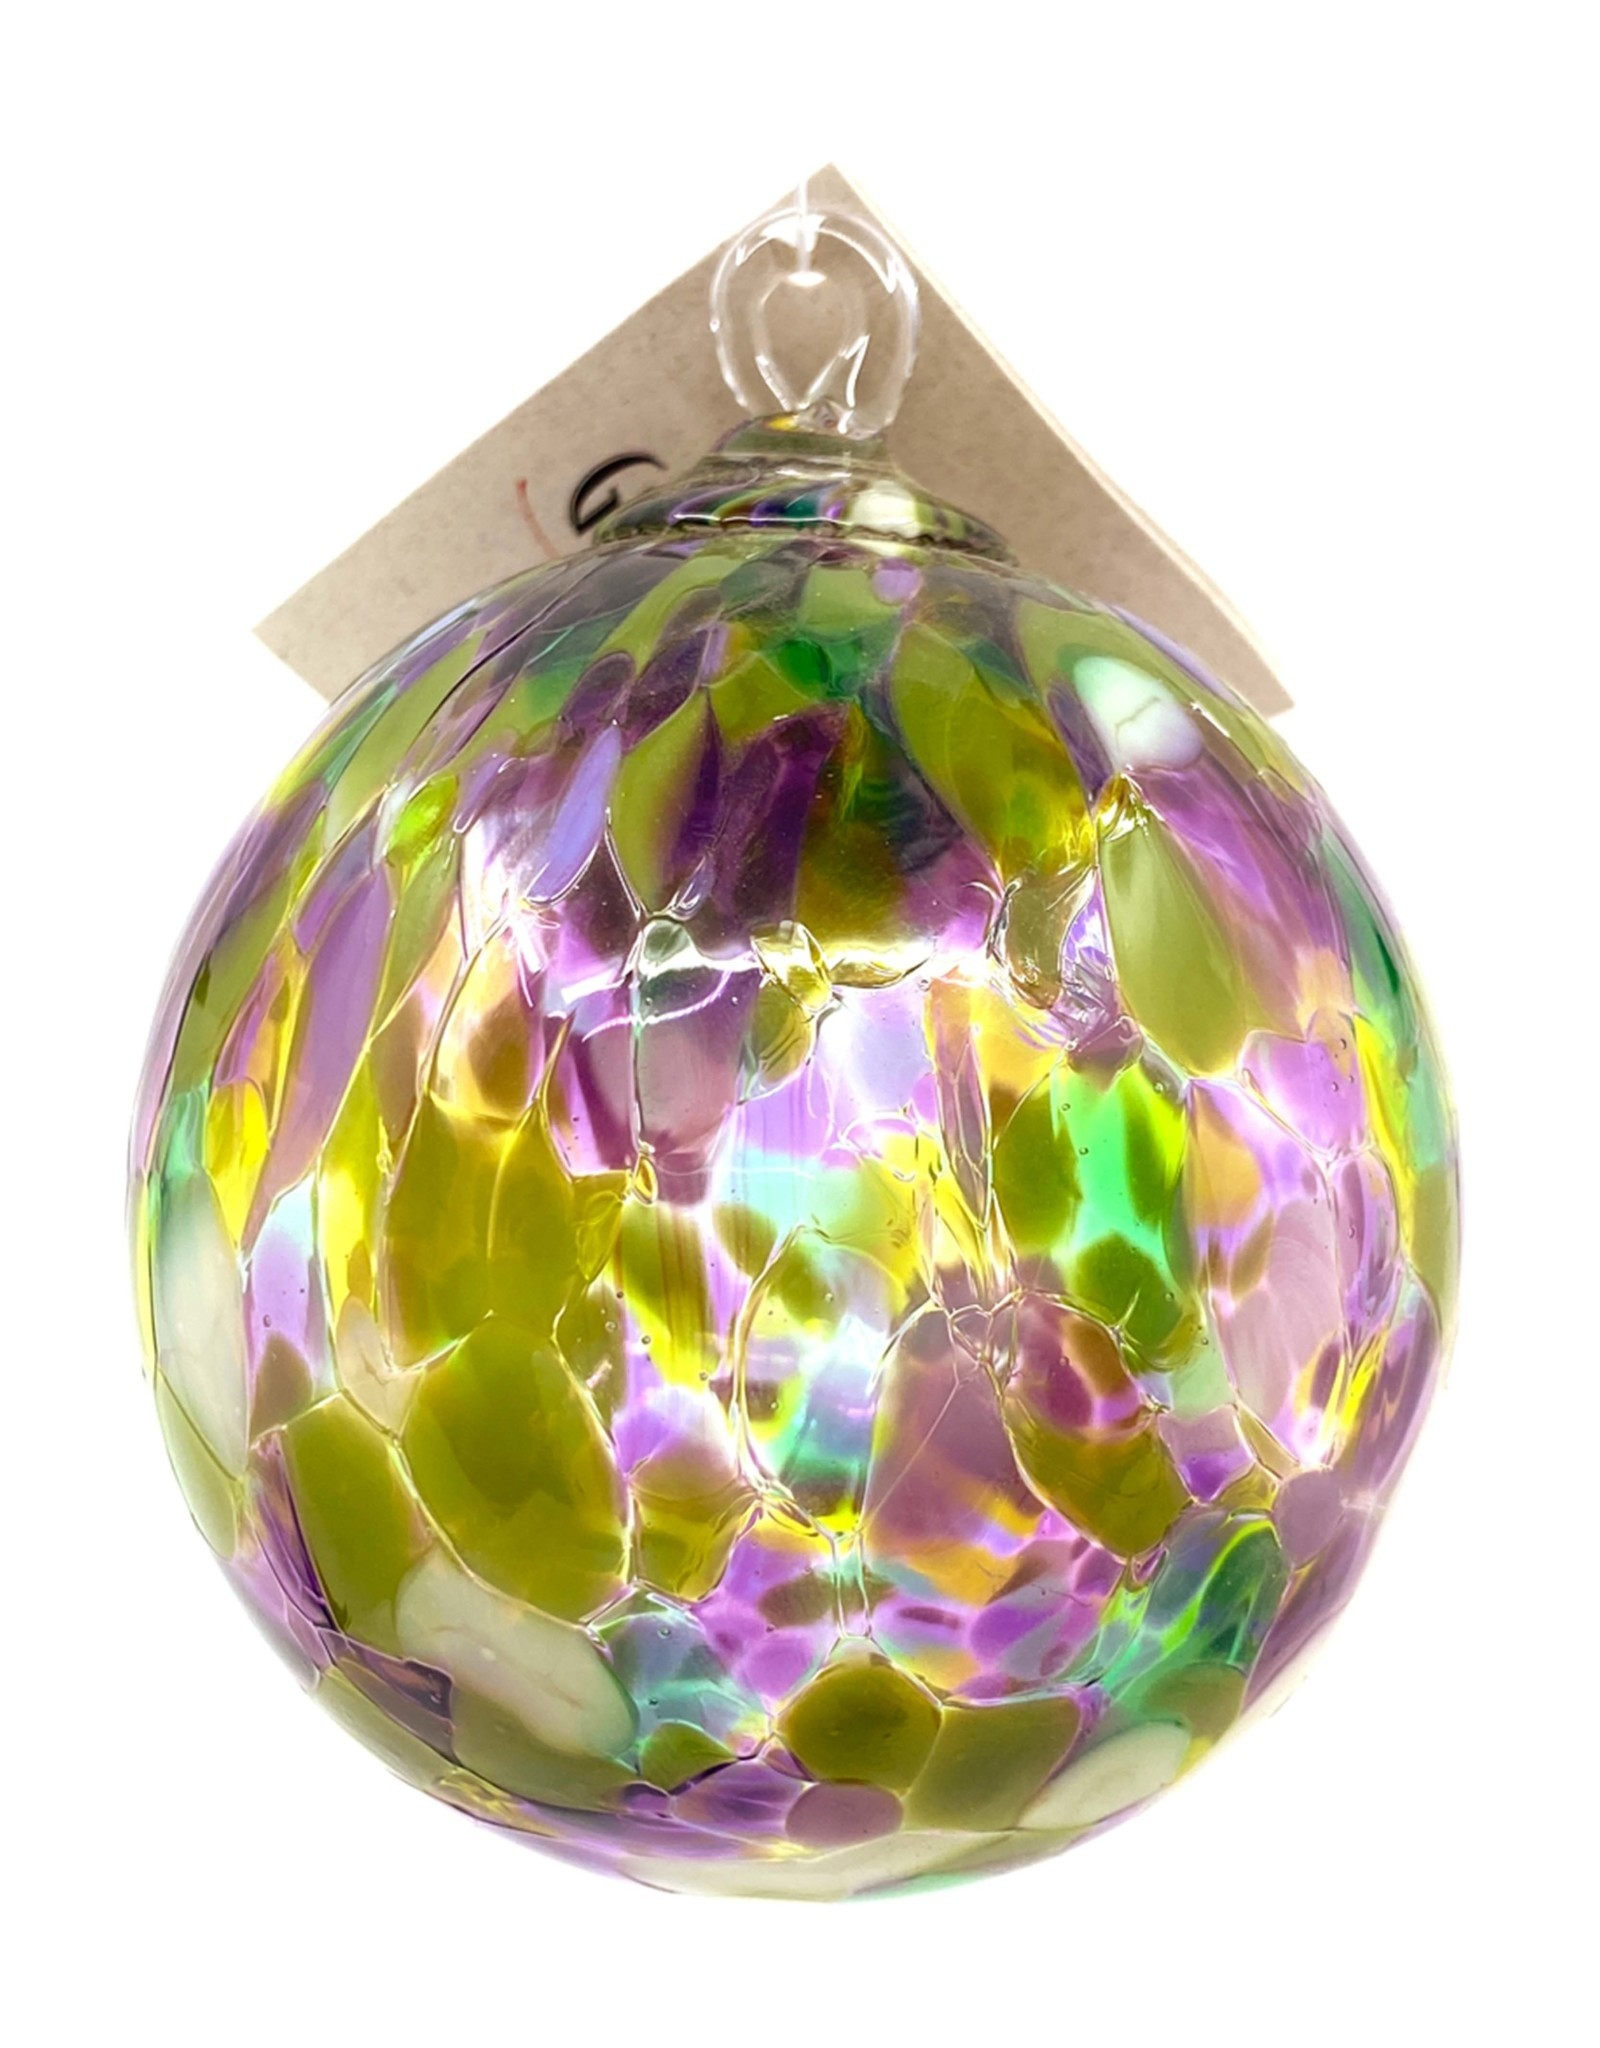 GLASS EYE WATER LILY ORNAMENT